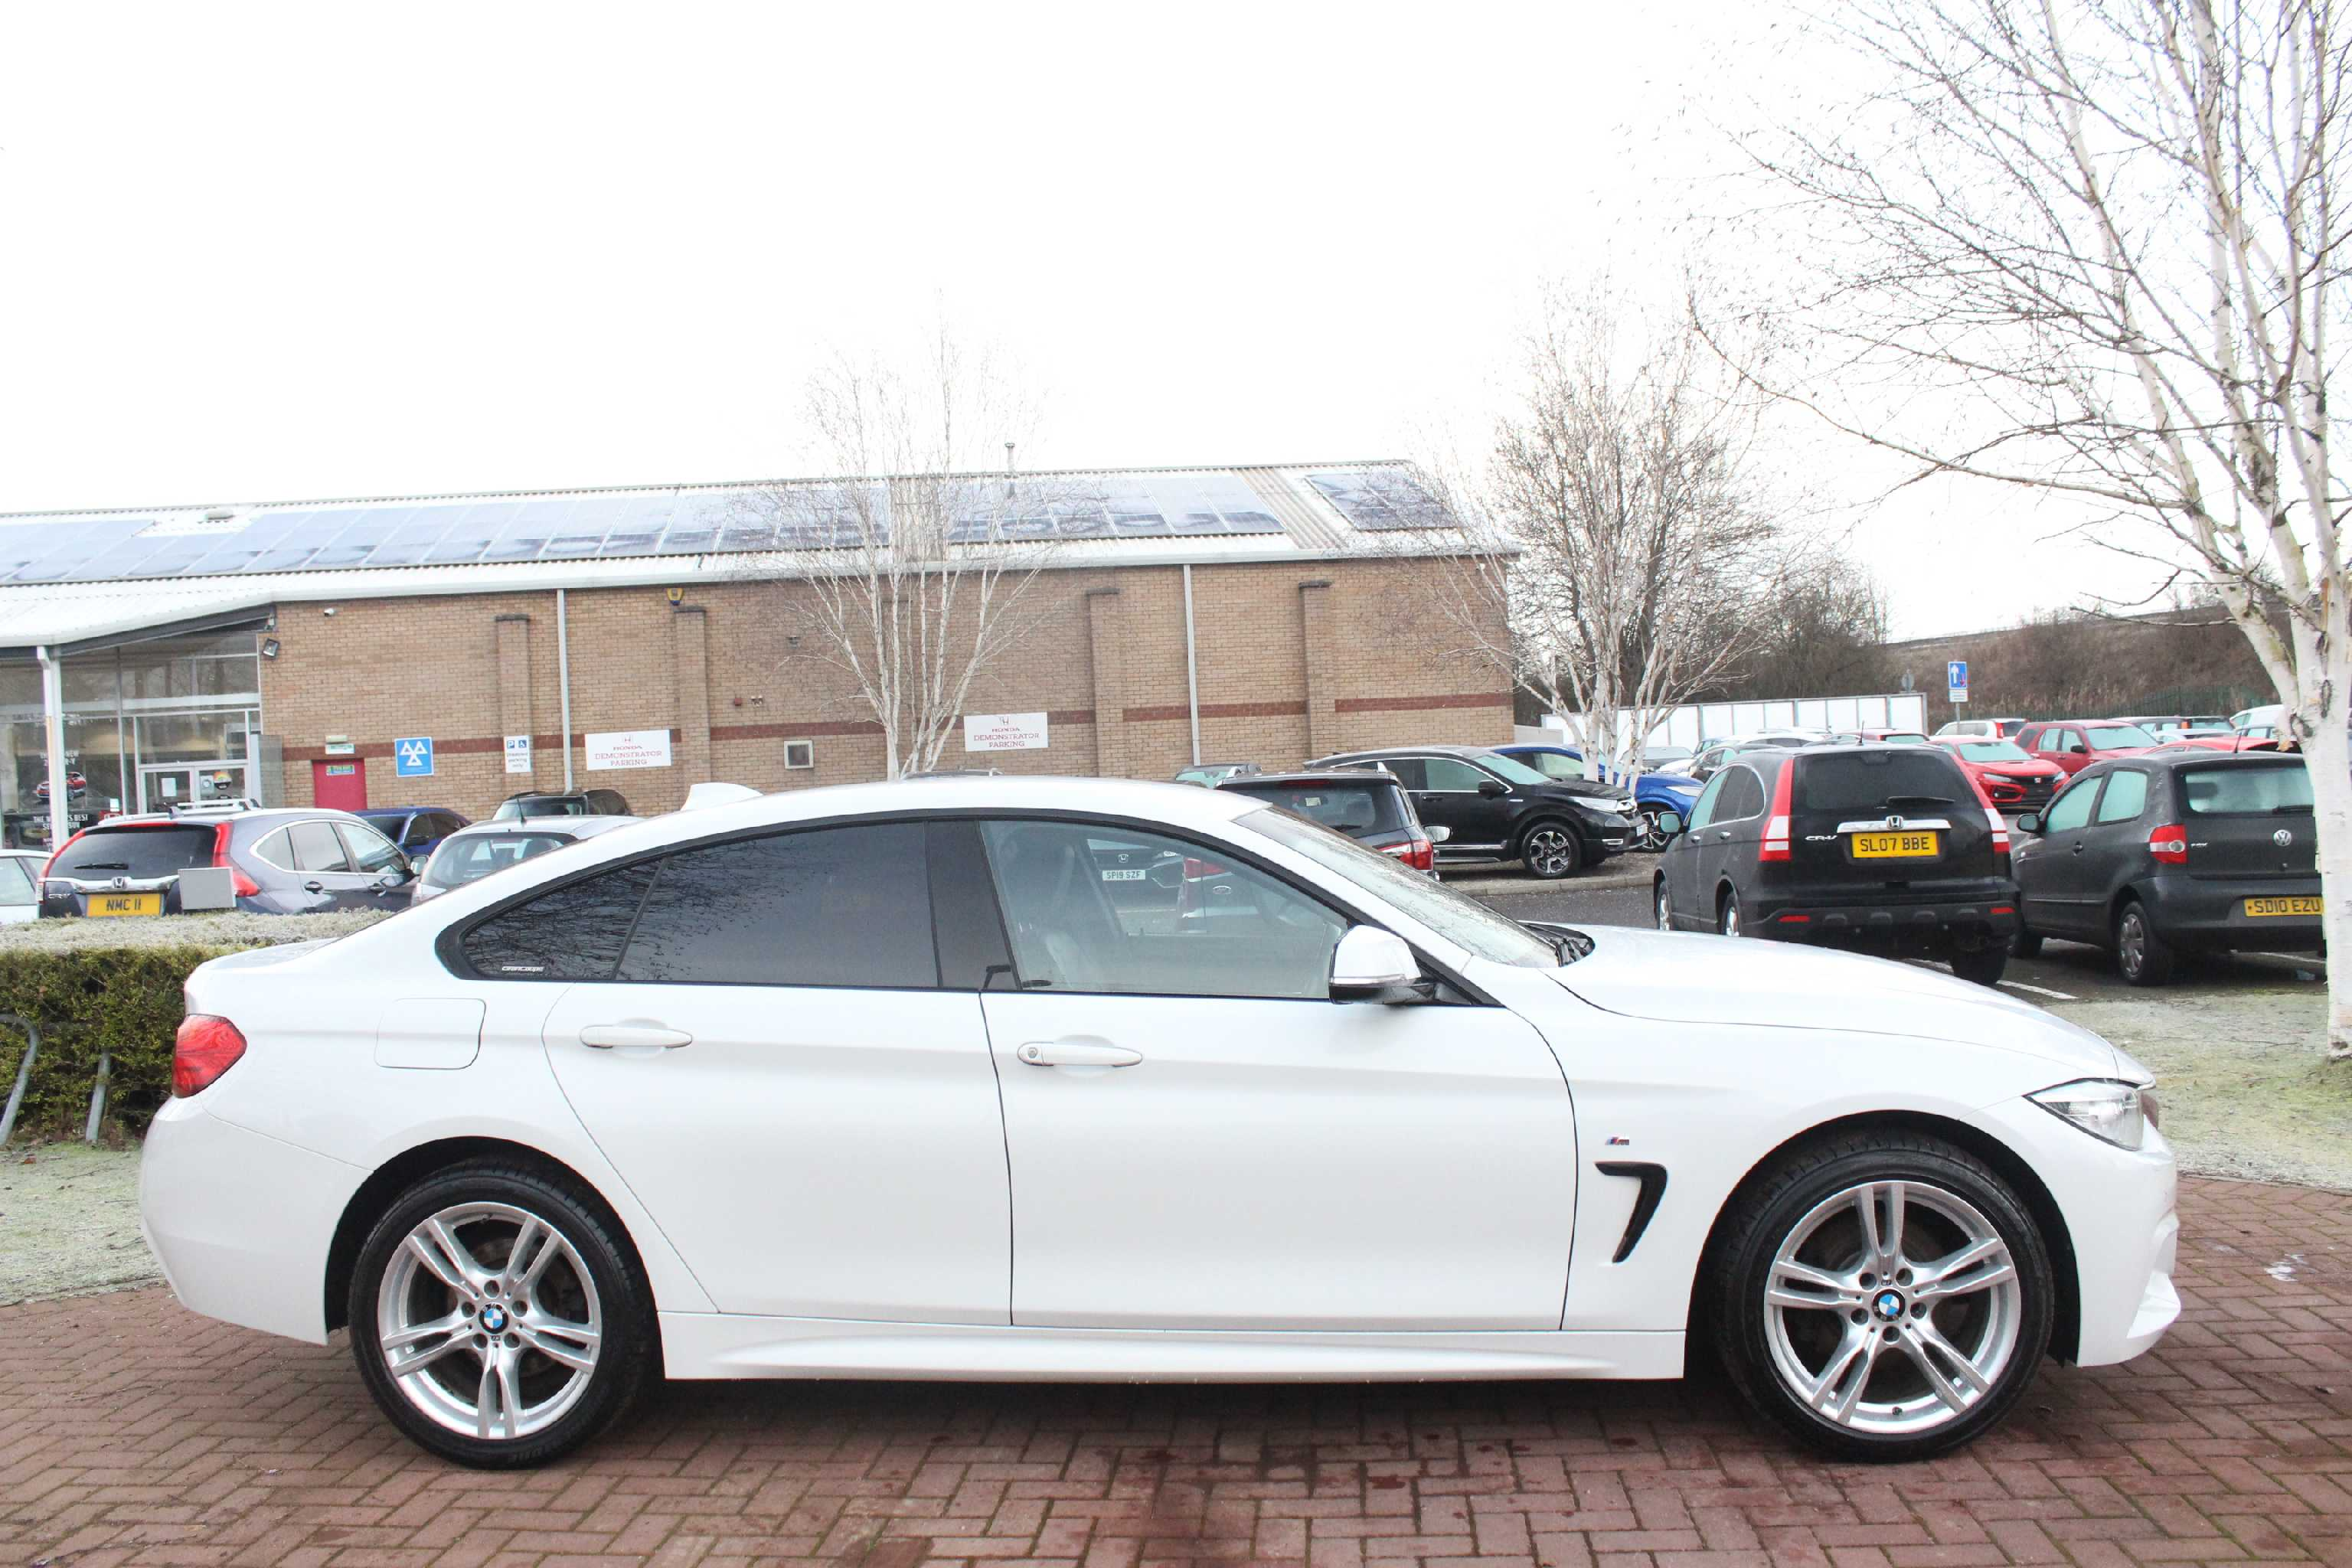 4 SERIES GRAN DIESEL COUPE 420d [190] xDrive M Sport 5dr [Professional Media]